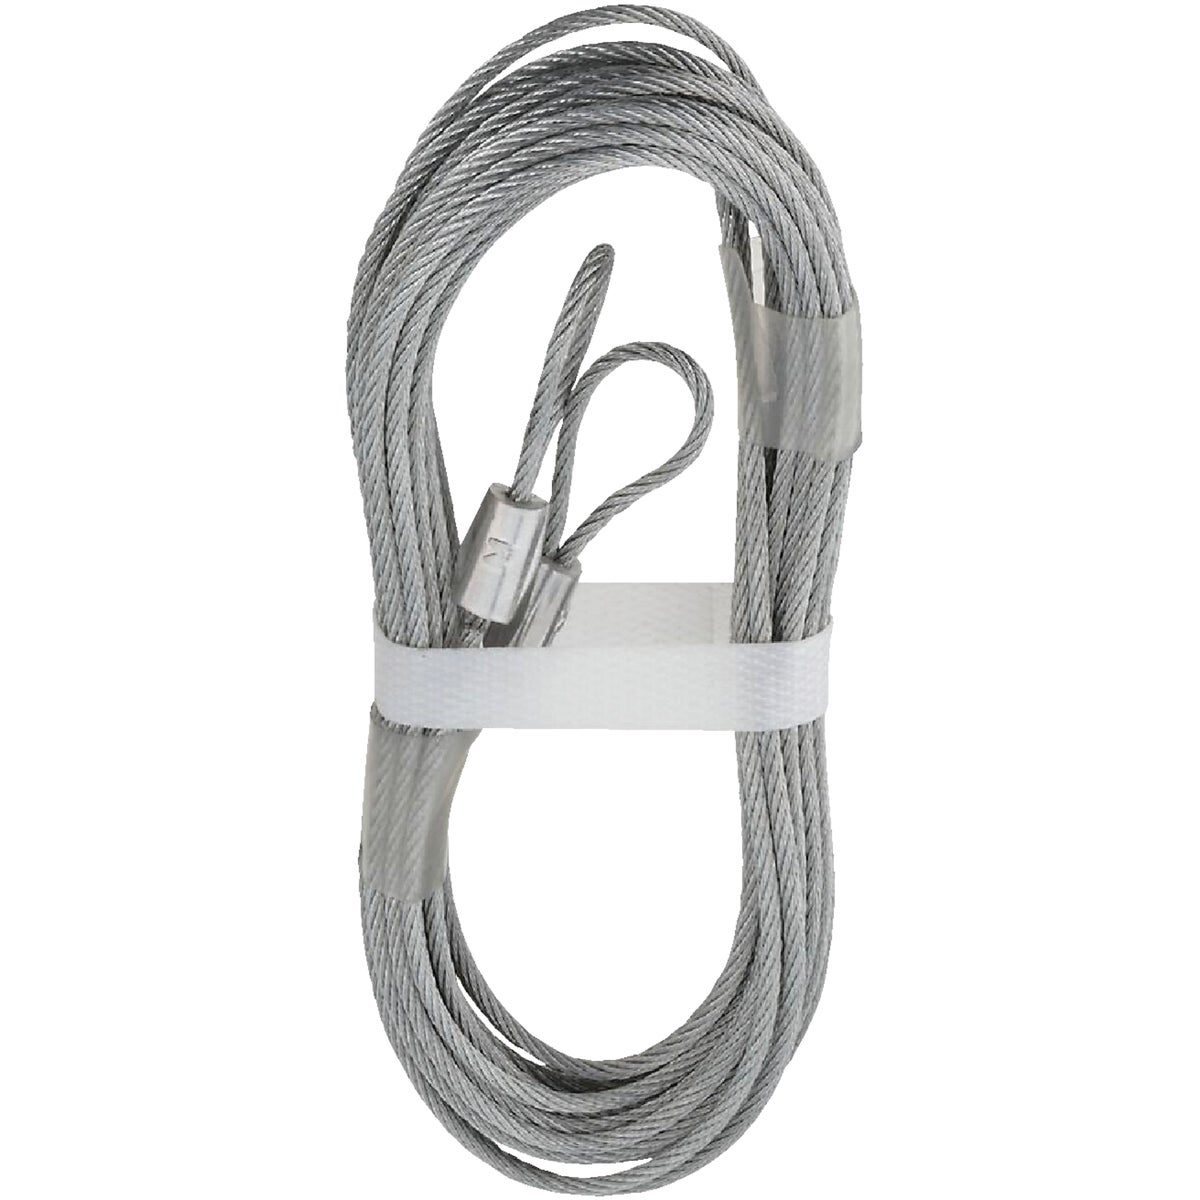 12' EXTENTION CABLE - N280297 by National Mfg Co